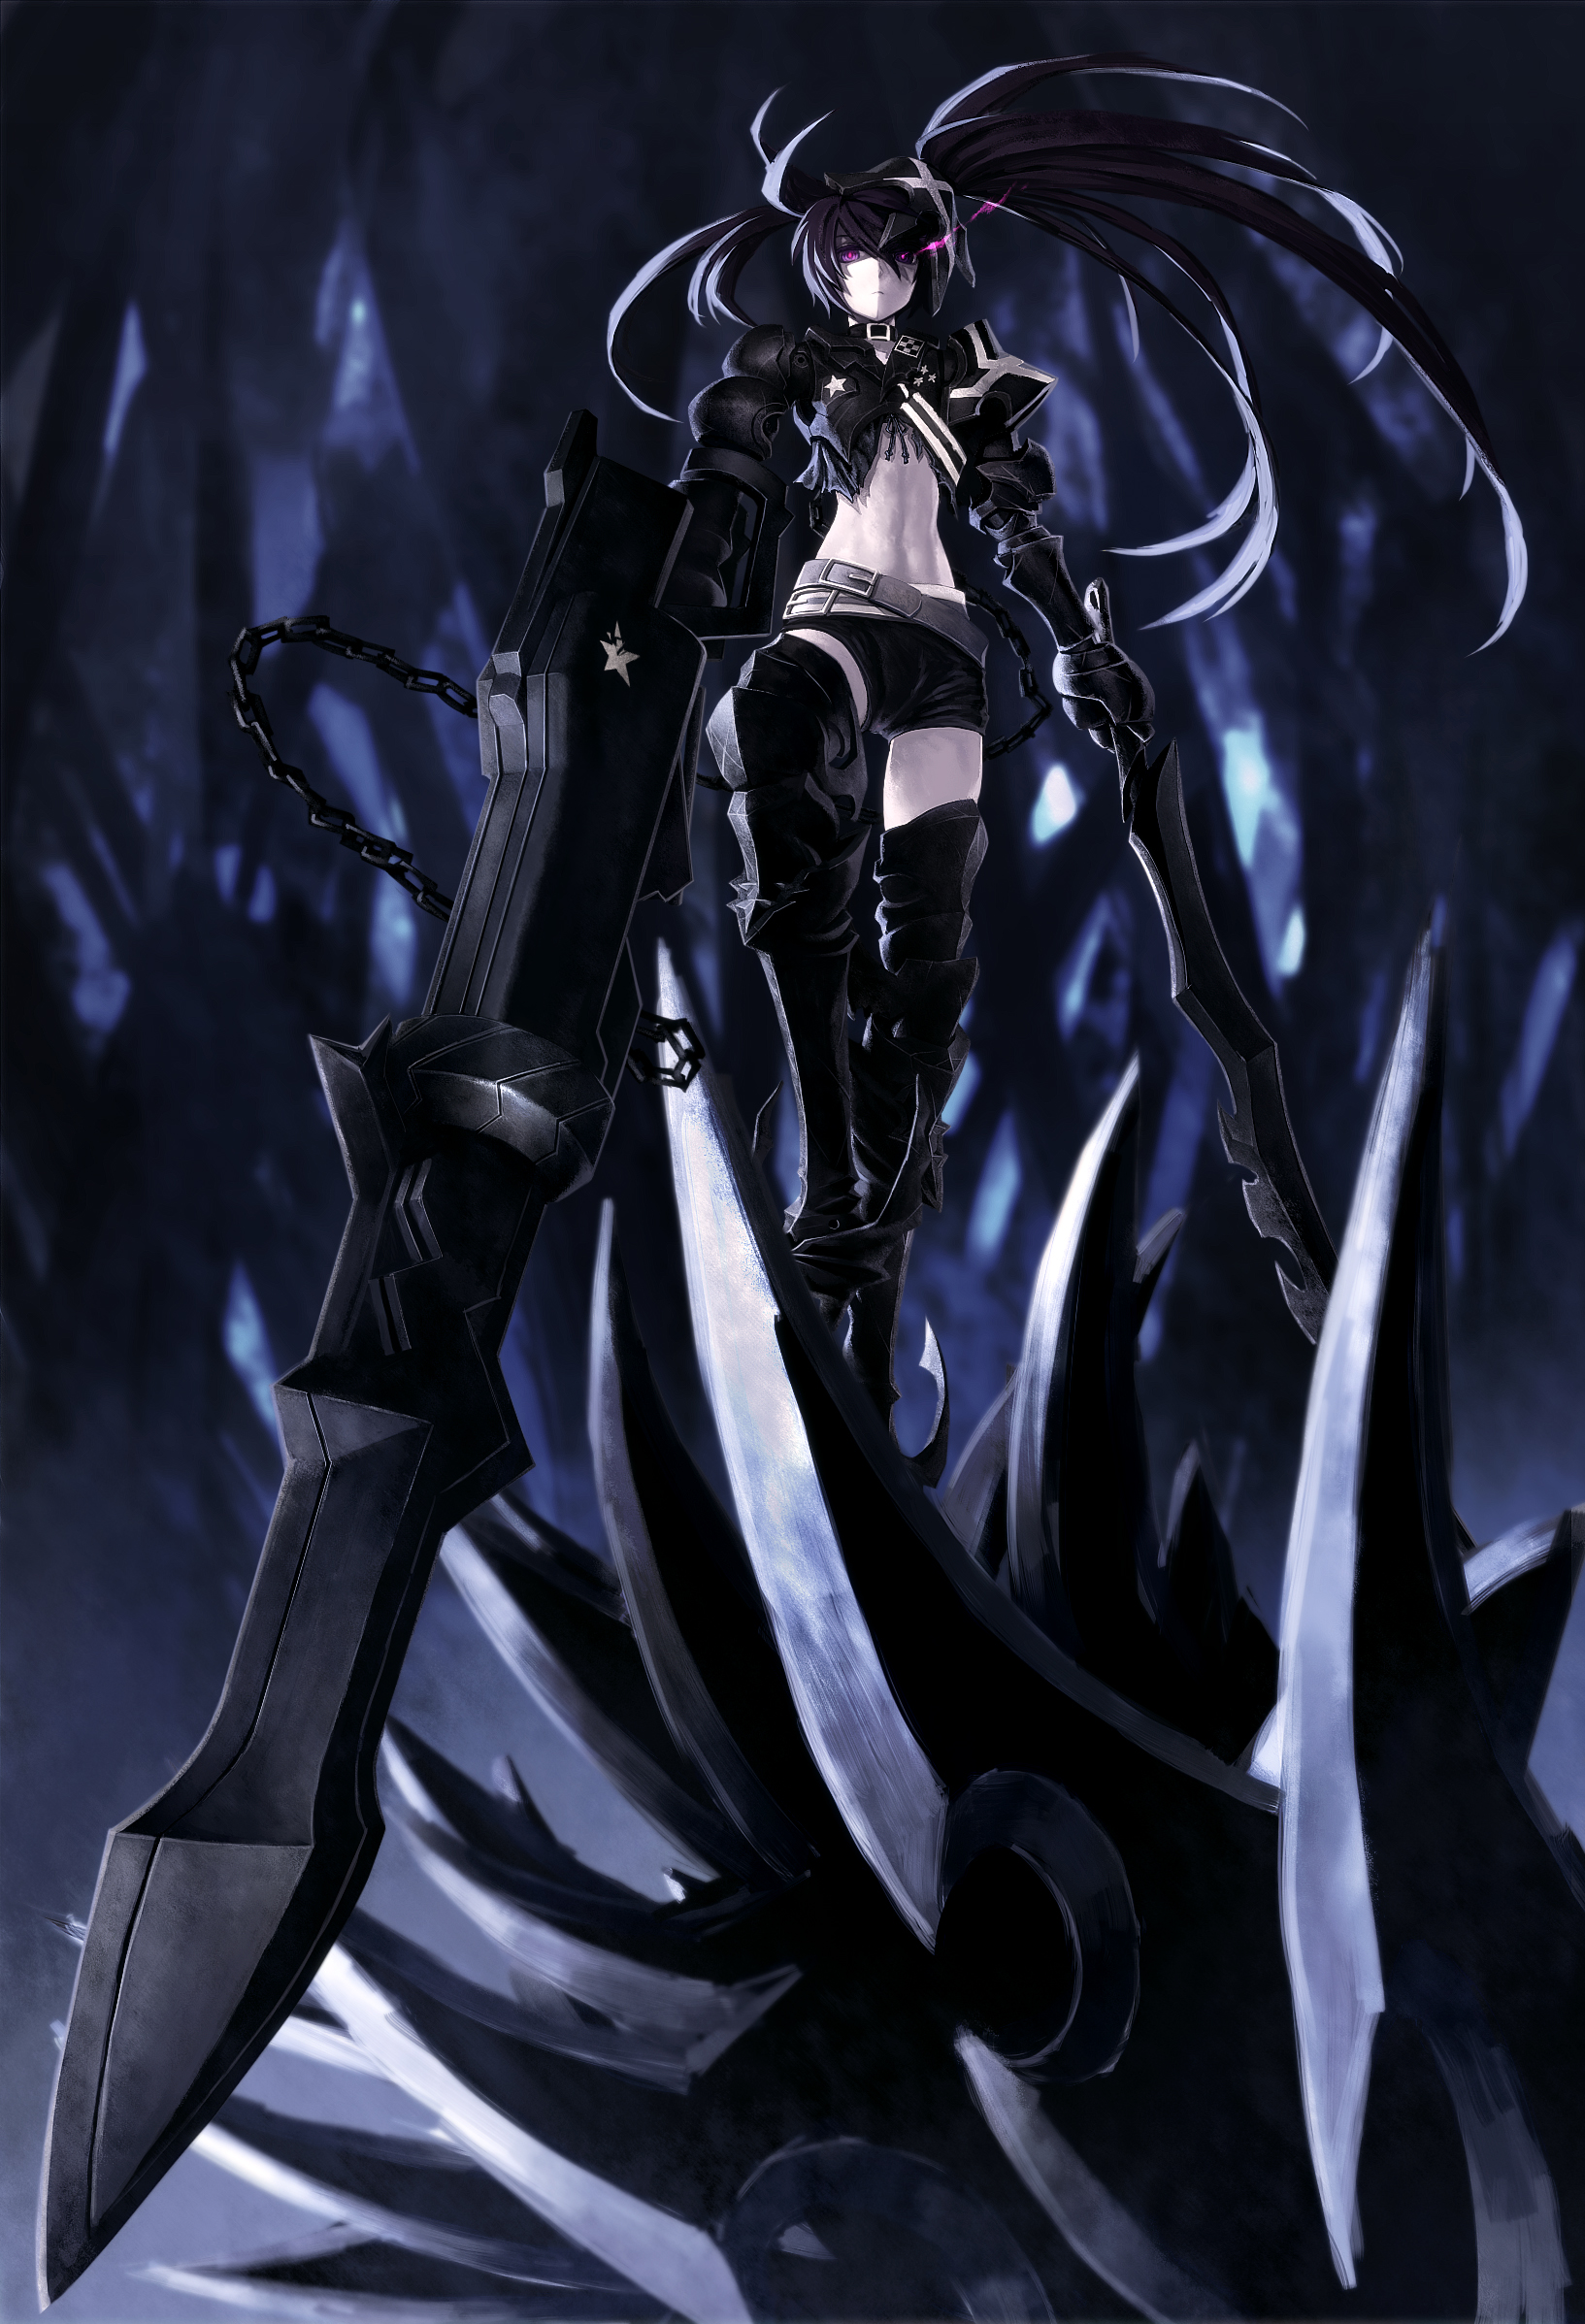 FilterBlackRock Shooter Character Mobile Wallpaper Android Iphone